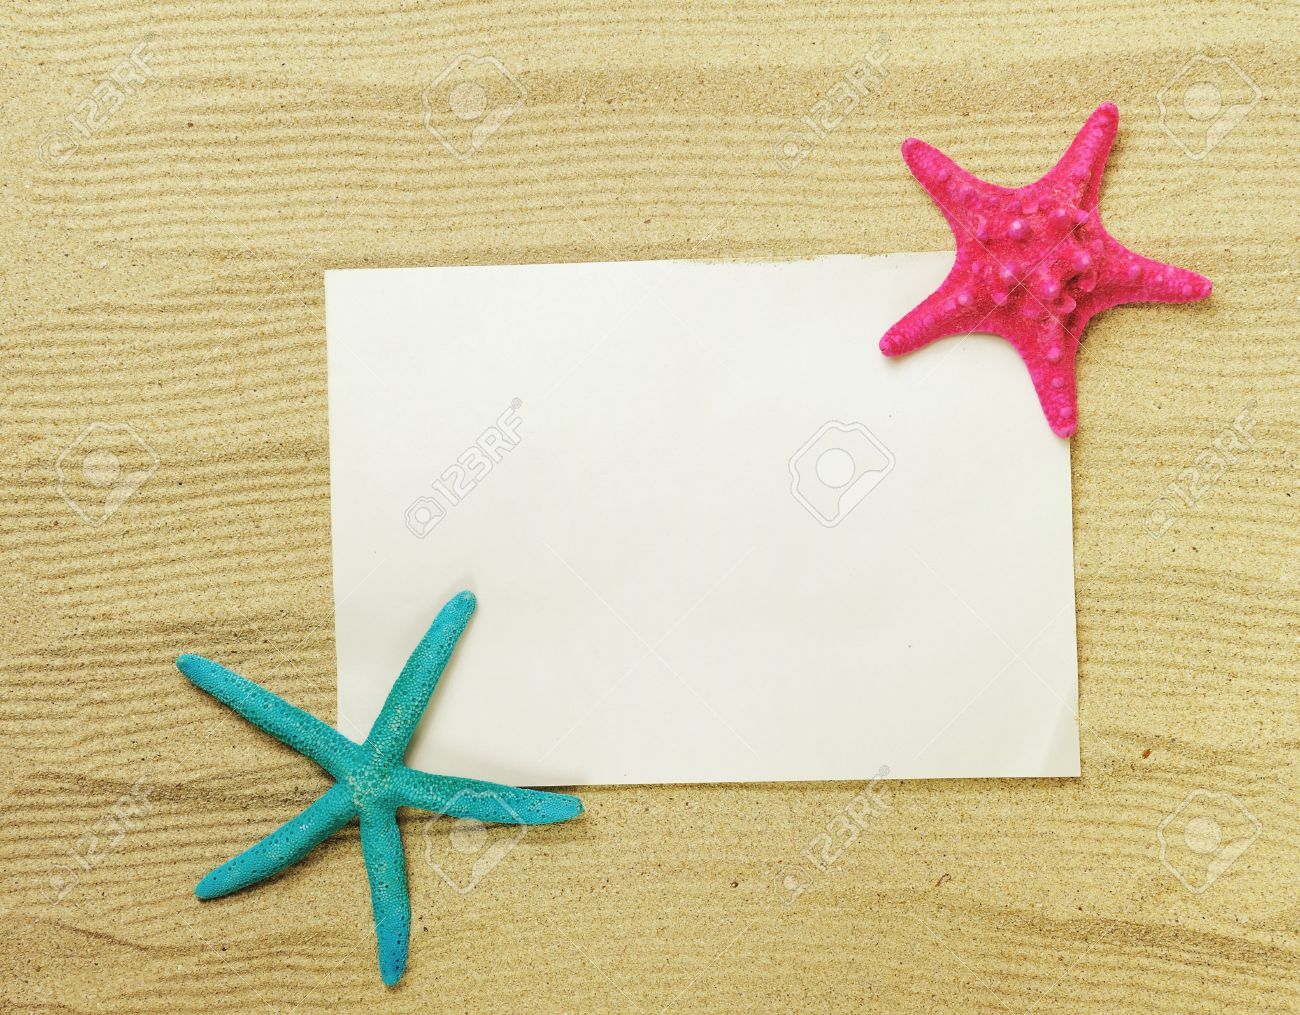 stock photo starfish and shells with frame on the beach vacation memories